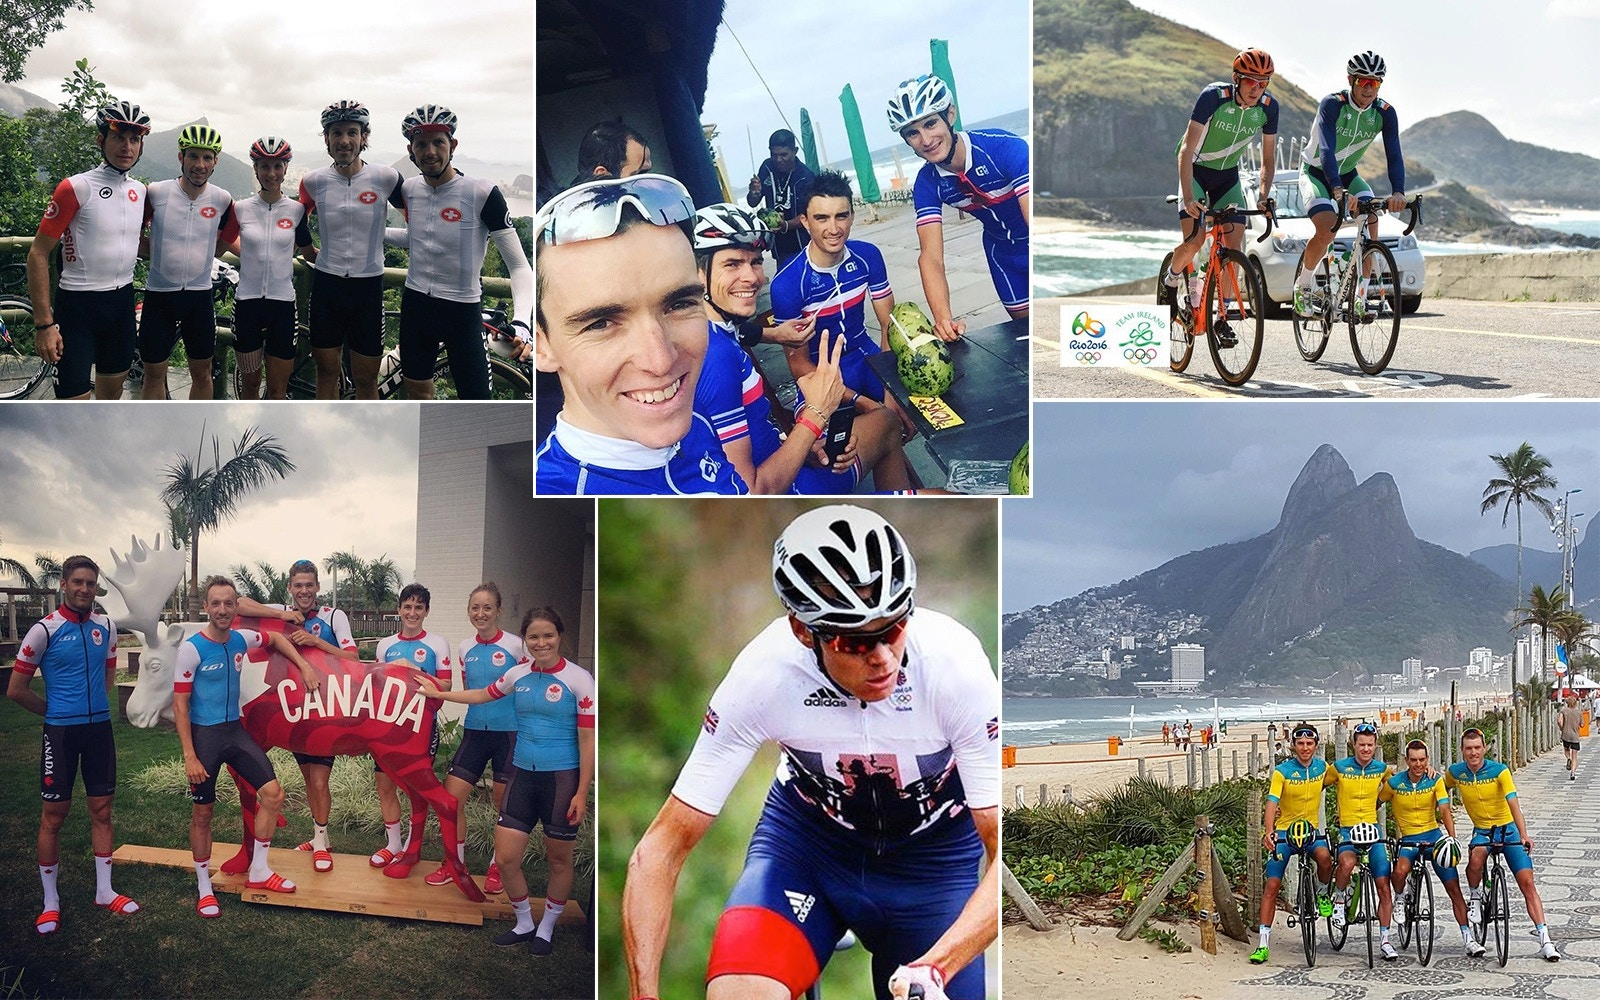 Rio Olympics: Team kits of the men's road race